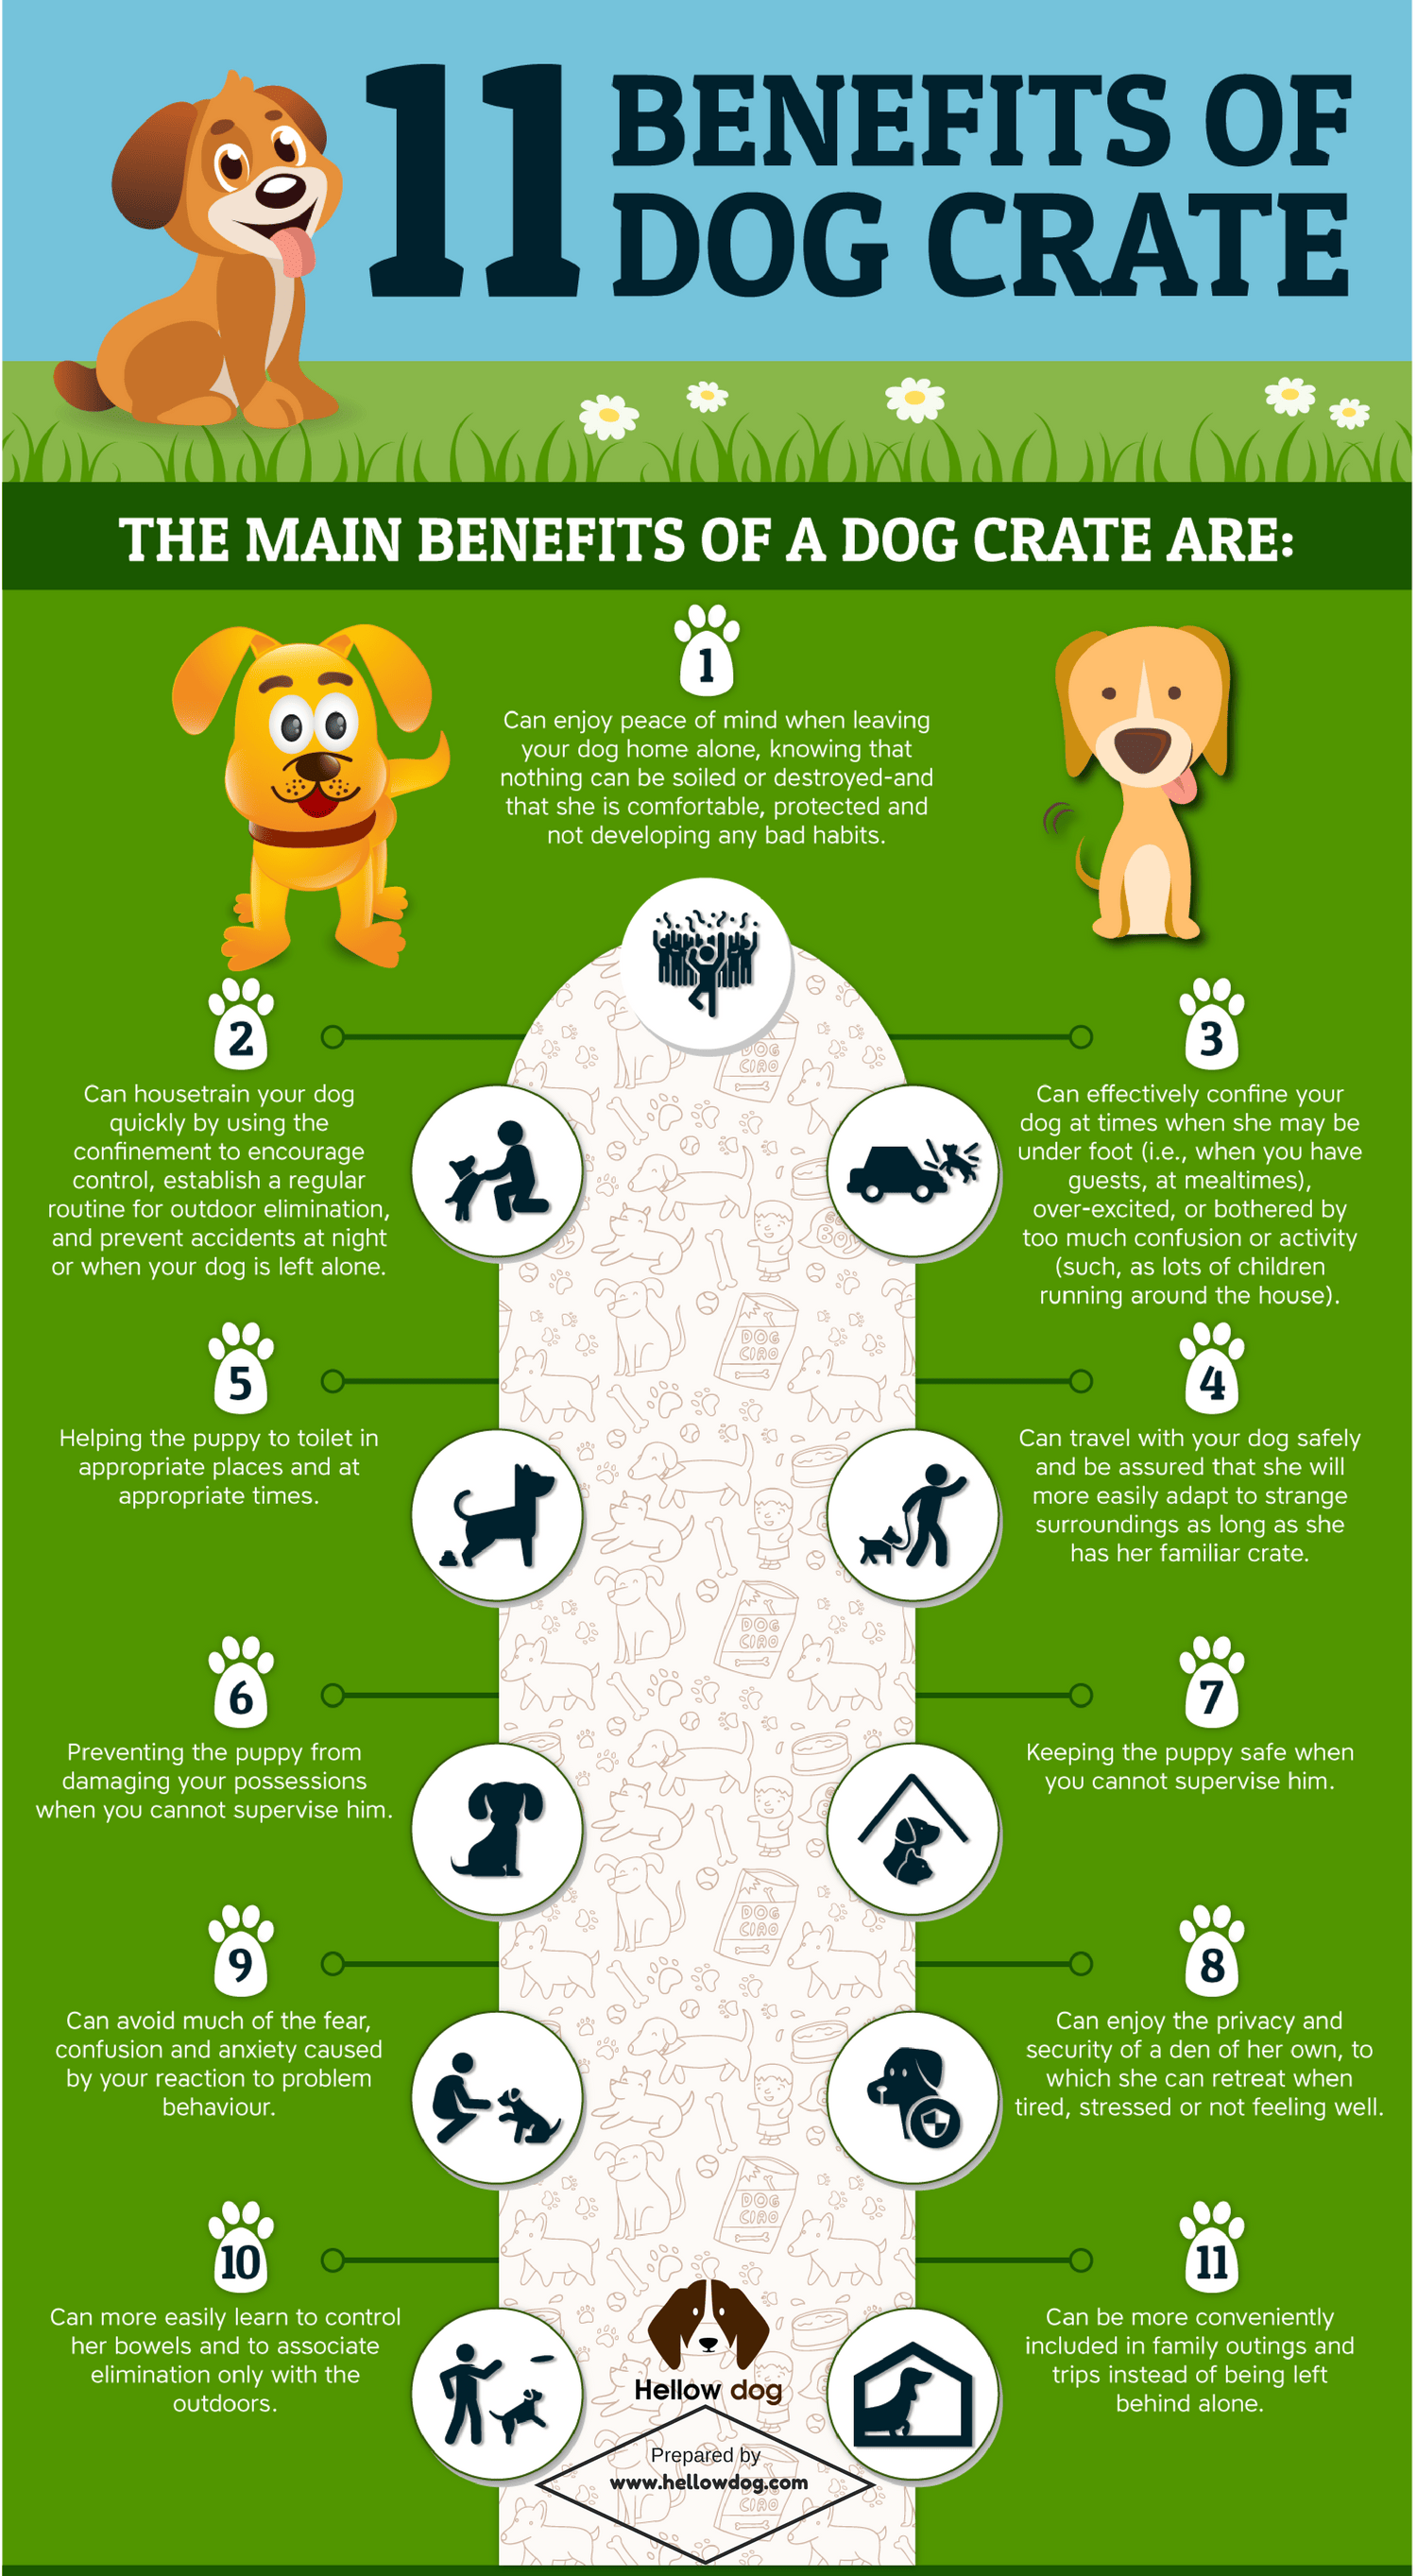 11 Benefits of Dog Crate